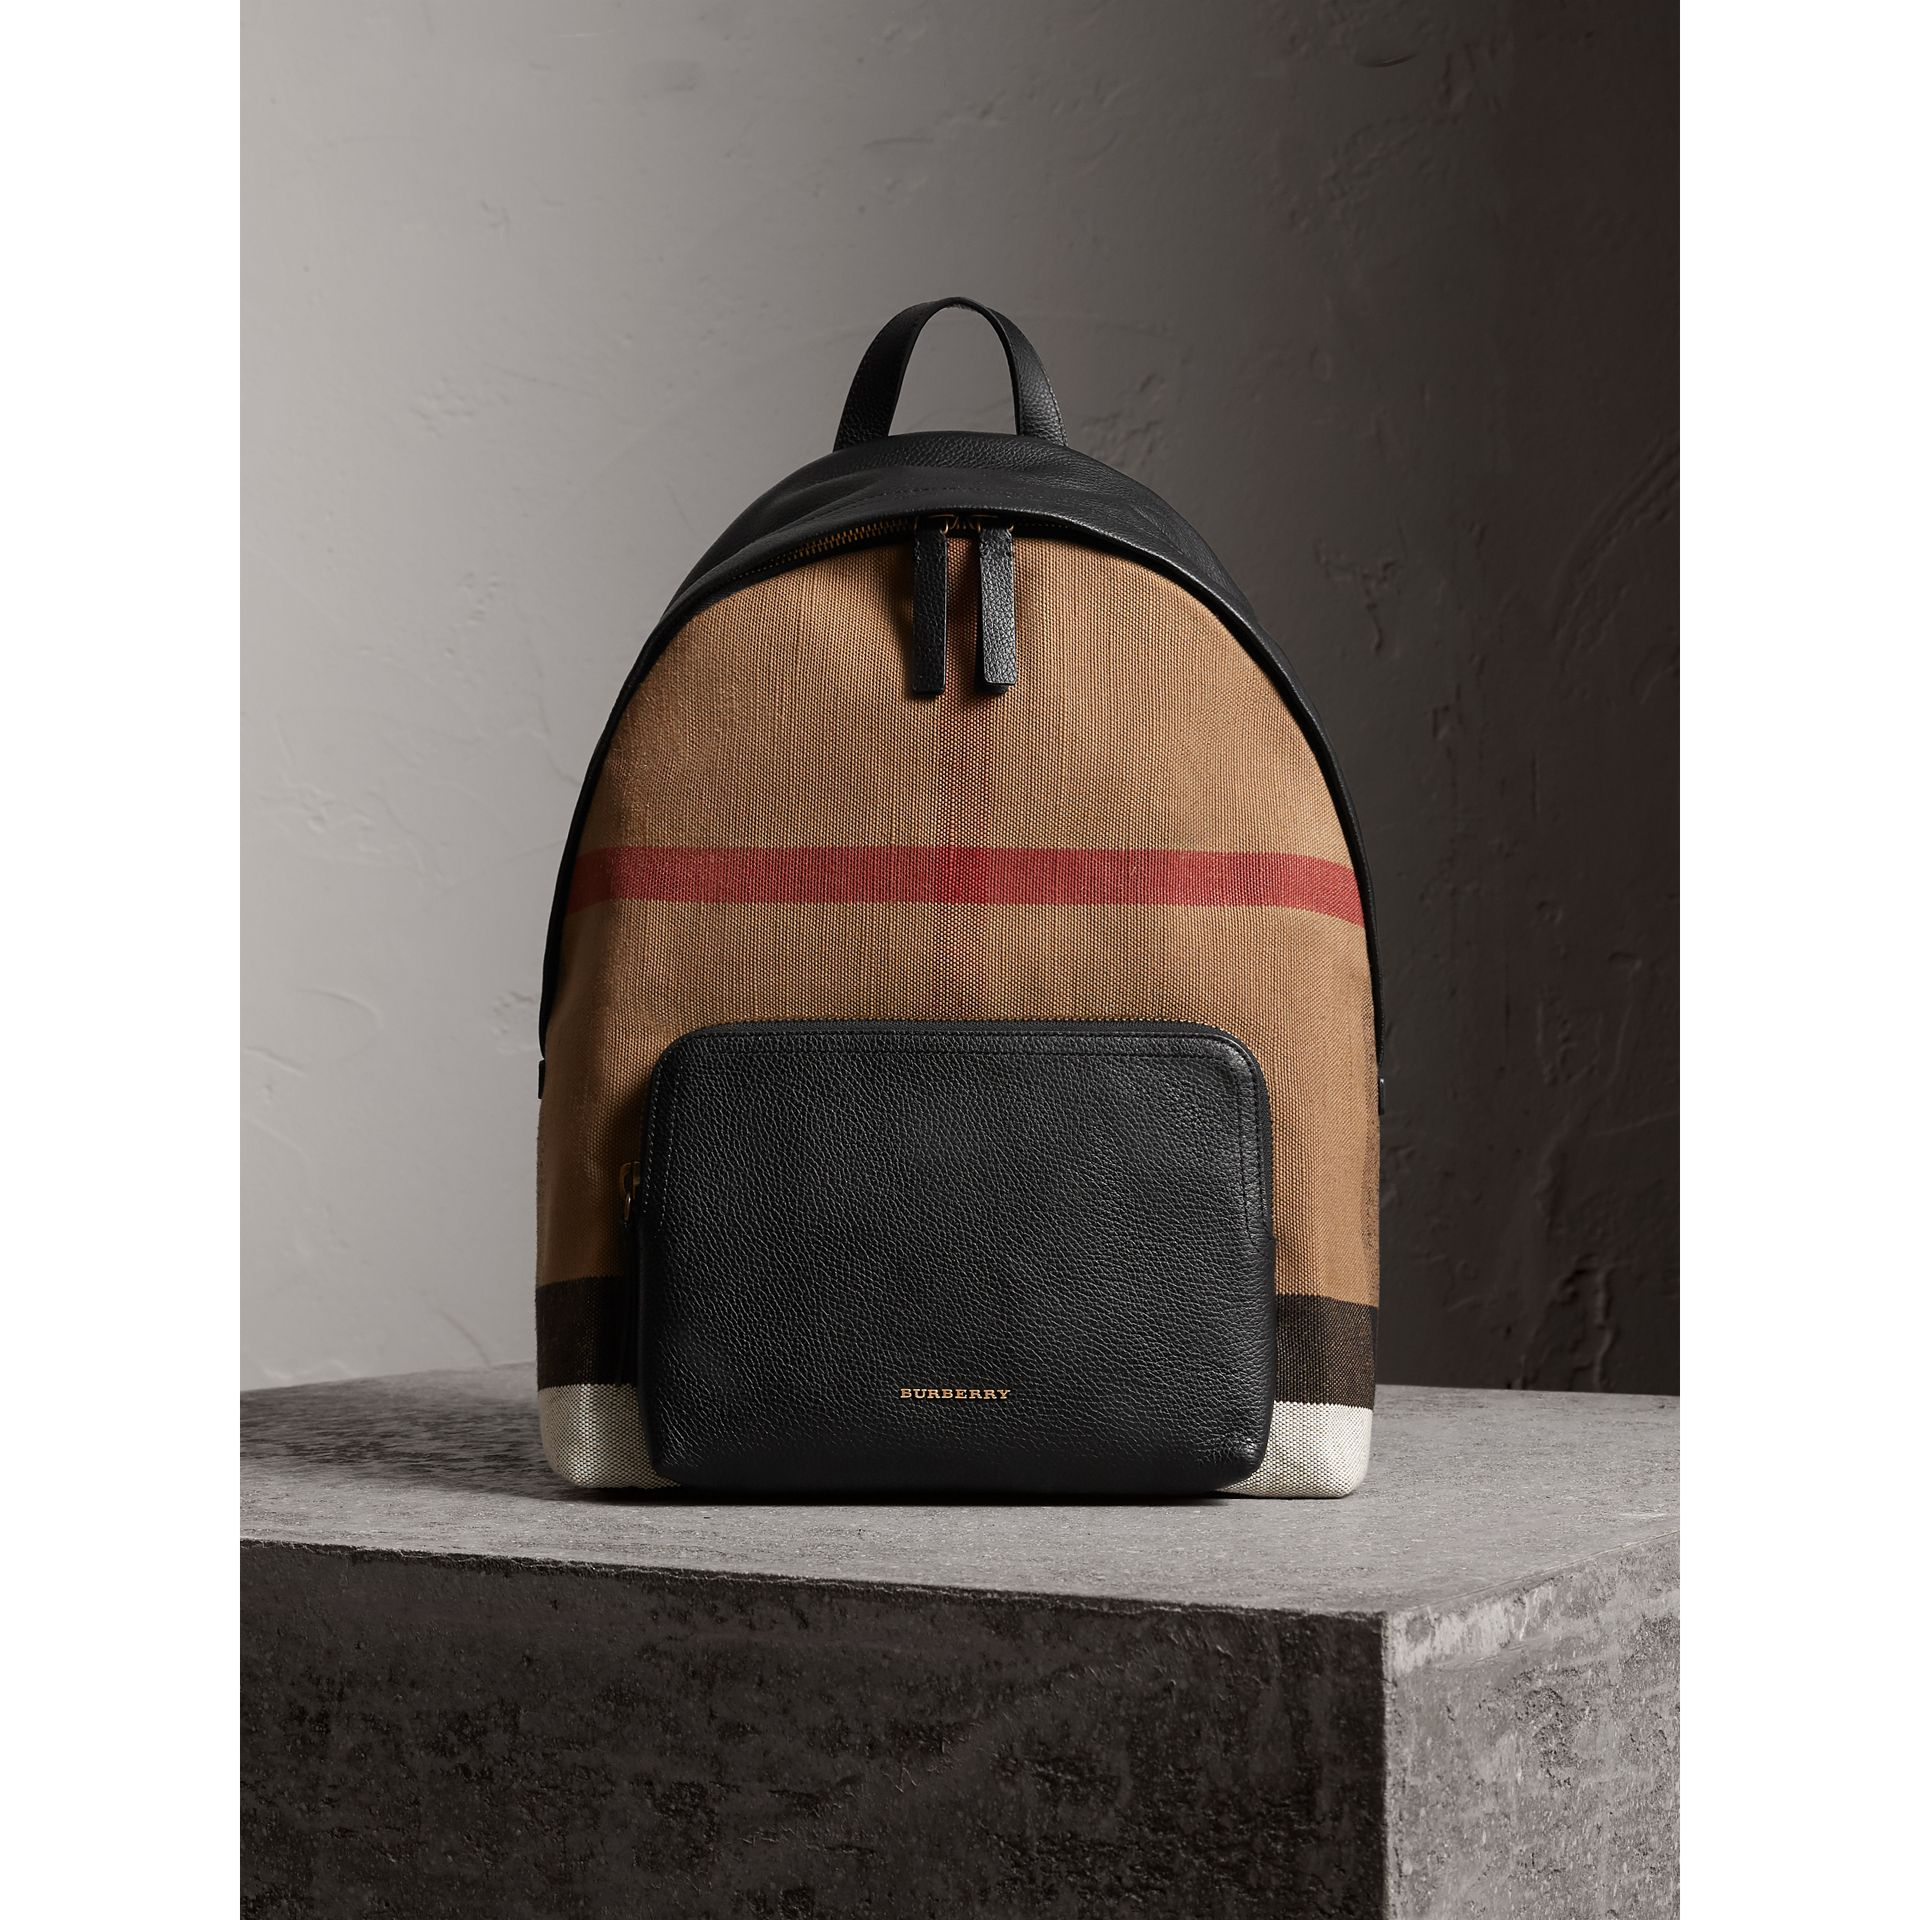 Sac à dos à motif Canvas check avec cuir (Noir) - Homme | Burberry - photo de la galerie 1